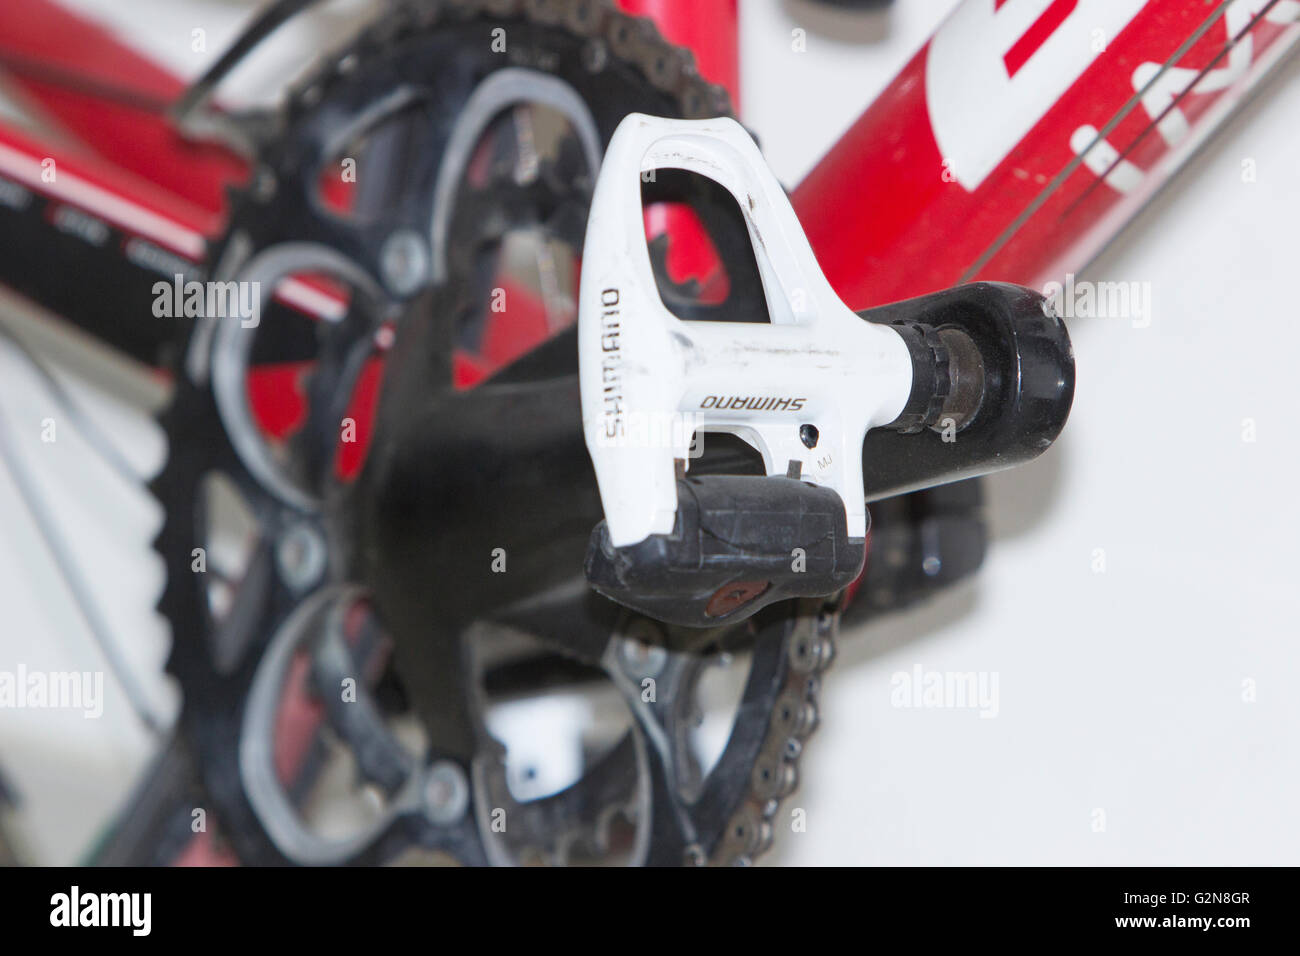 Bianchi the world's most stylish bike Red and white 20 geared 105 component Alu Nirone road bike shimano pedal - Stock Image